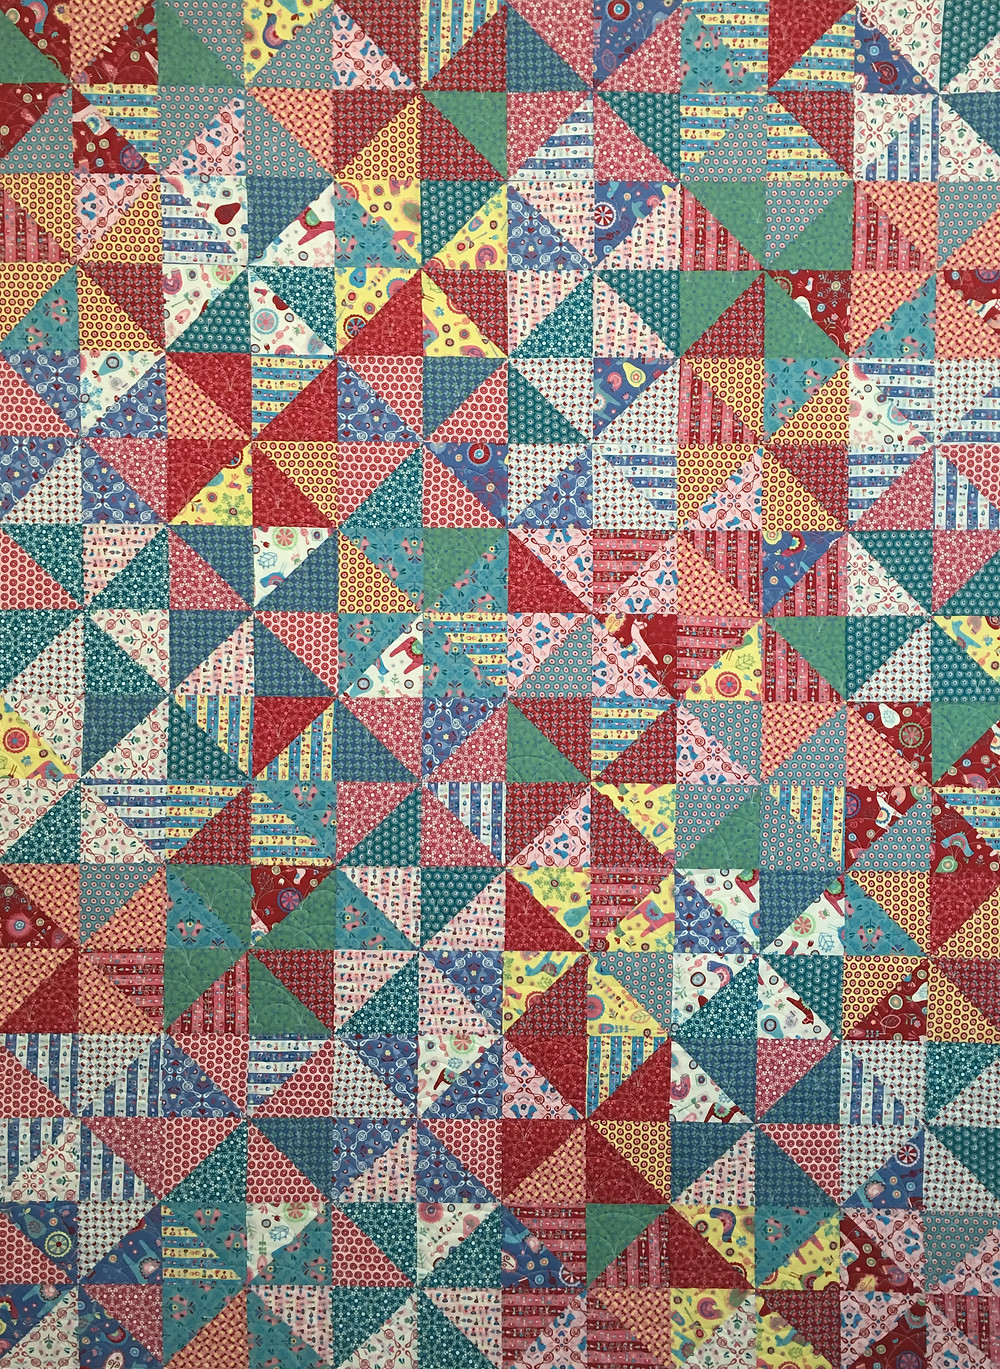 Broken Dishes quilt by Anna King